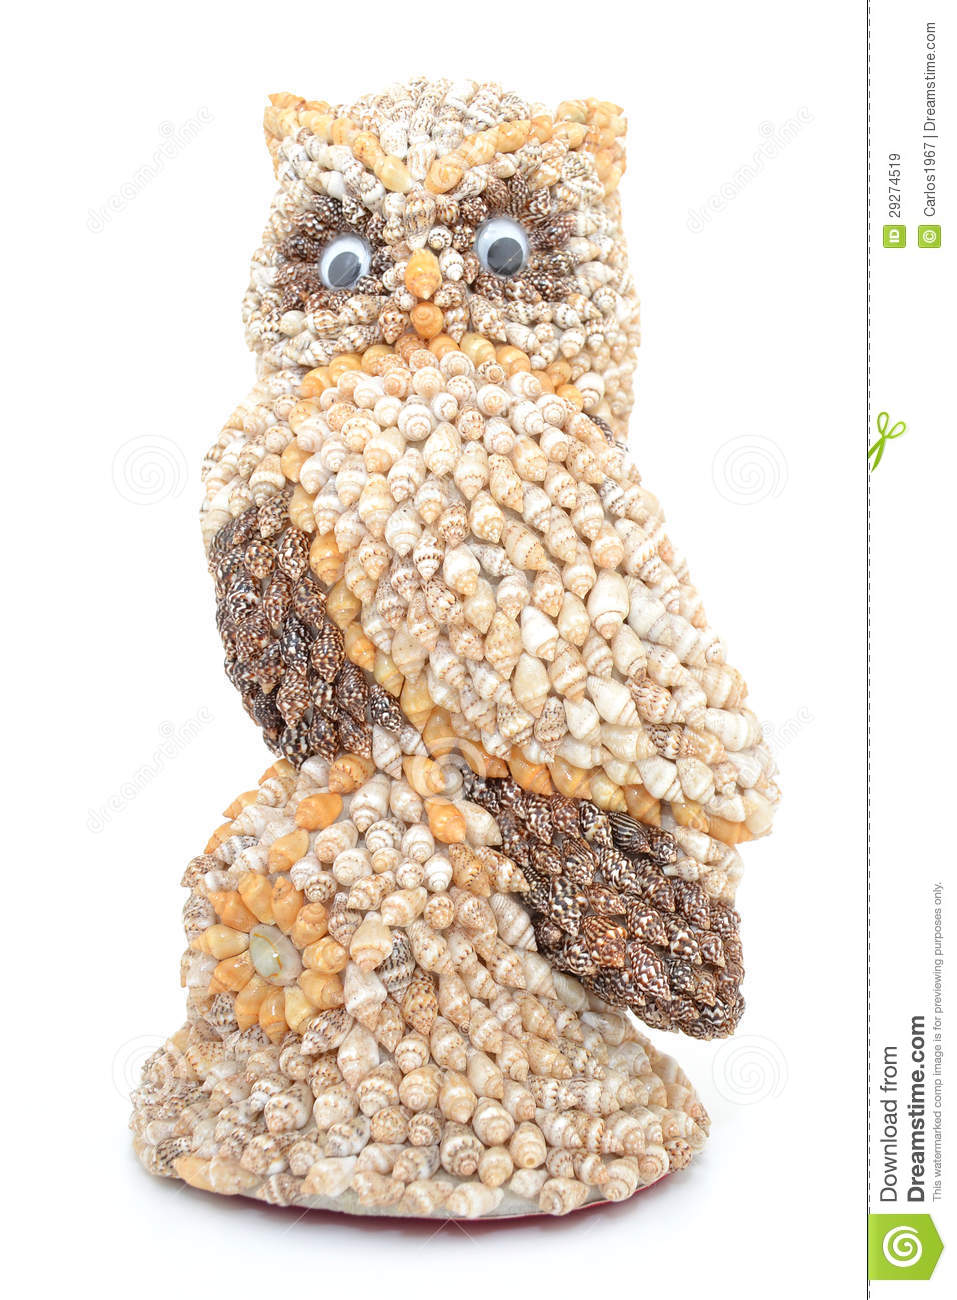 Owl made with shells royalty free stock images image for What are shells made of